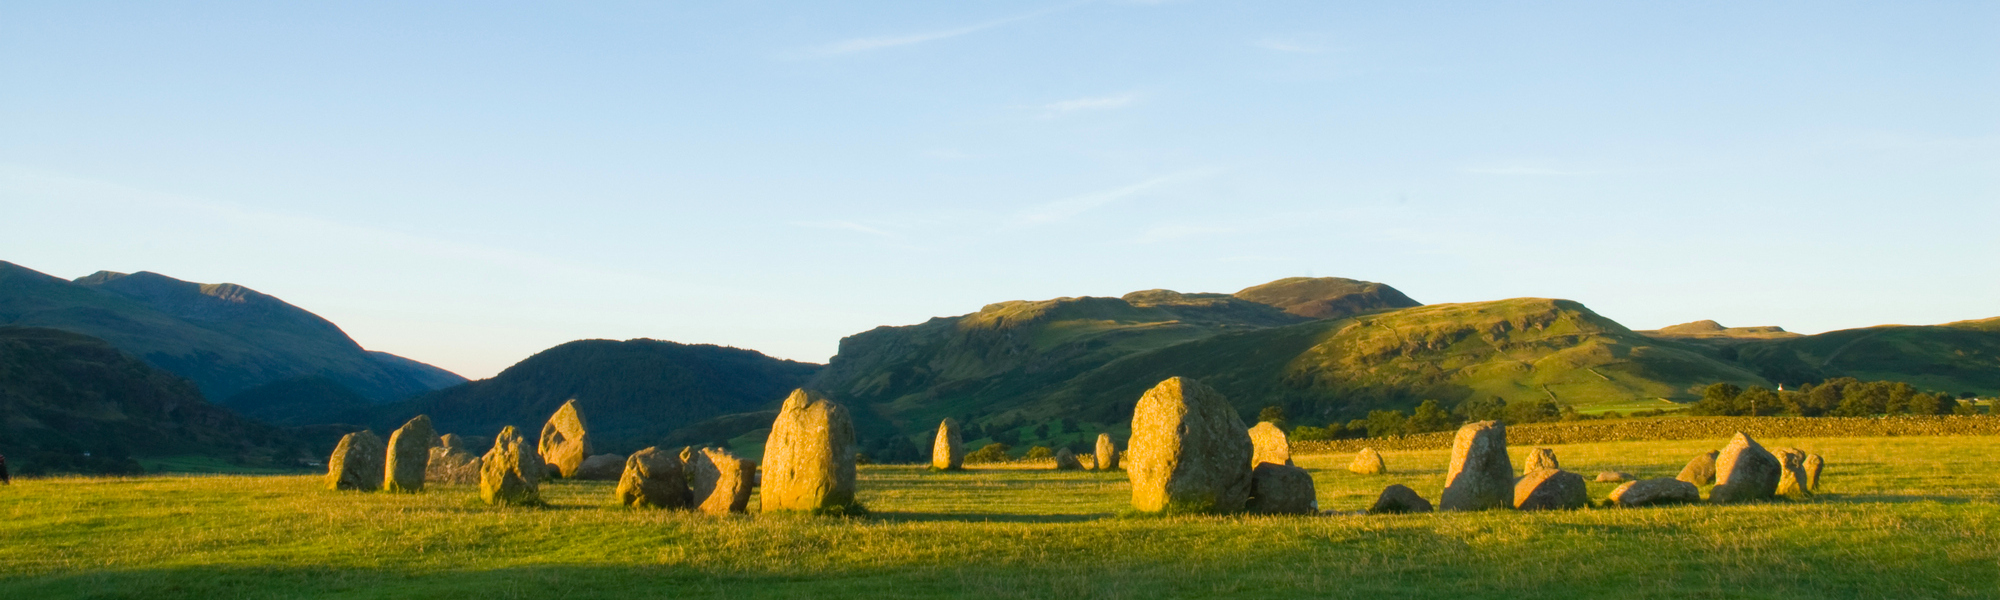 Castlerigg stone circle. Photo by Dave Willis.